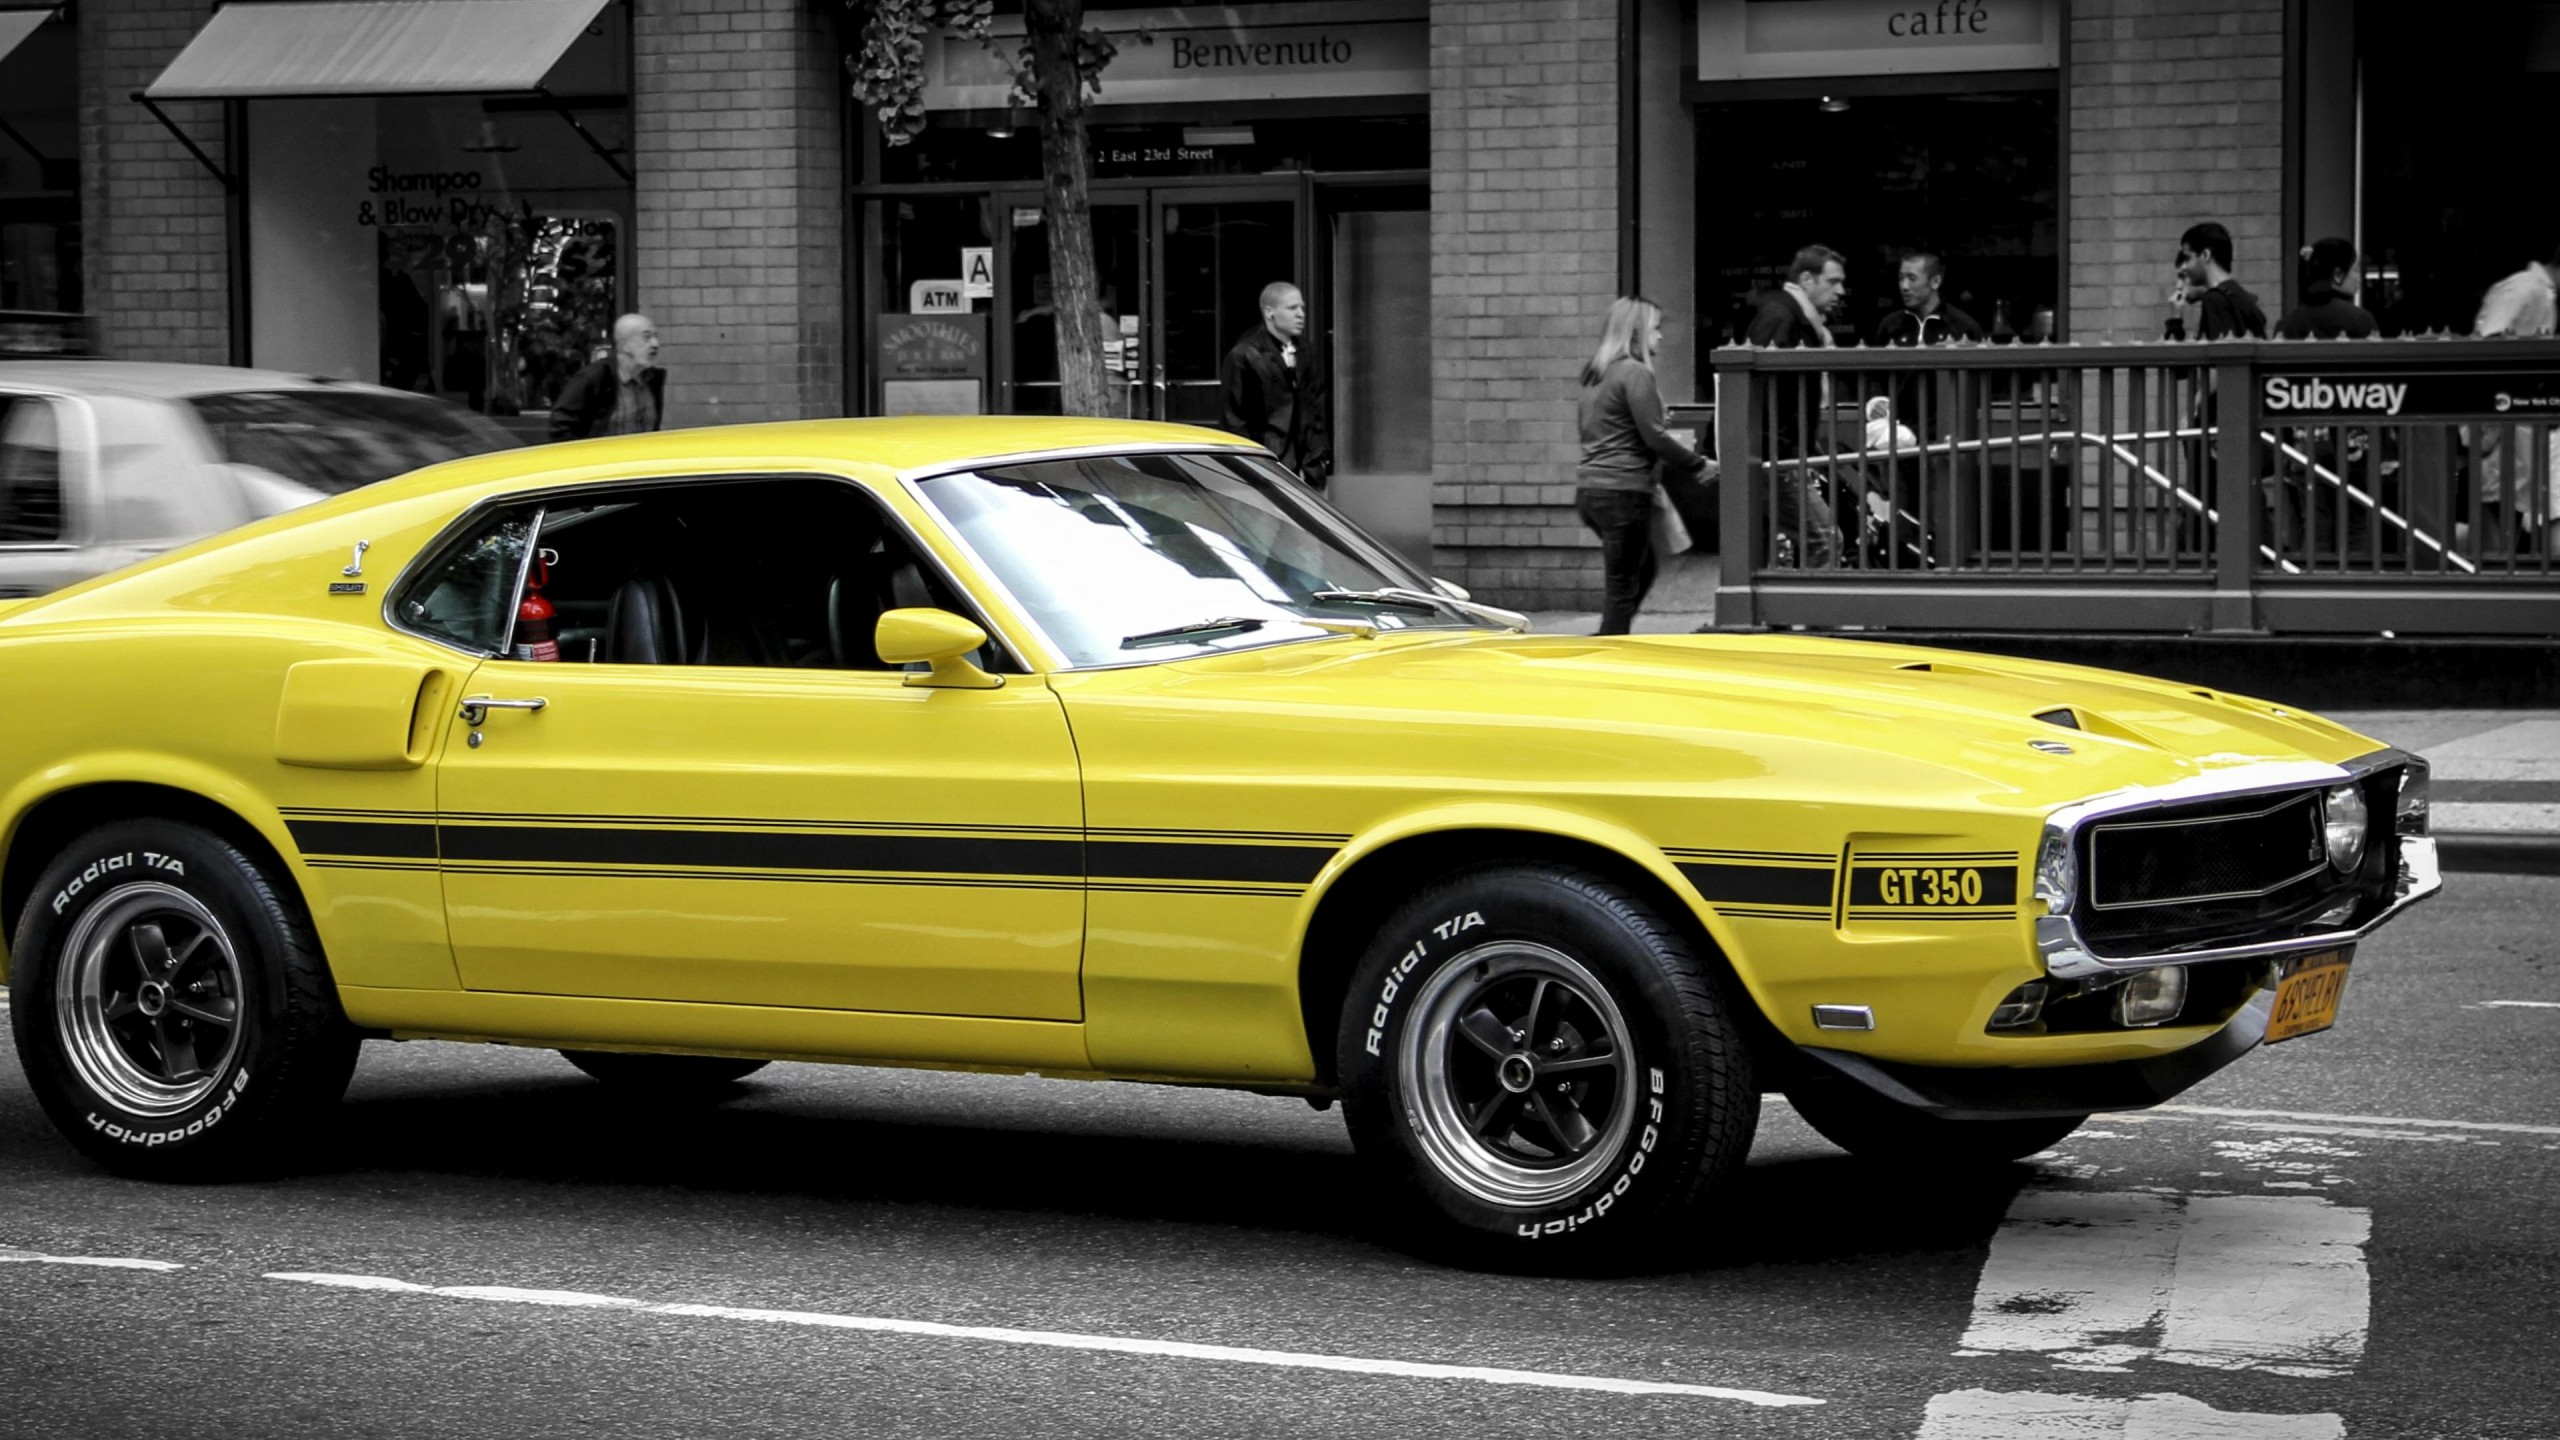 1969 Ford Mustang GT350 Wallpaper for Social Media YouTube Channel Art